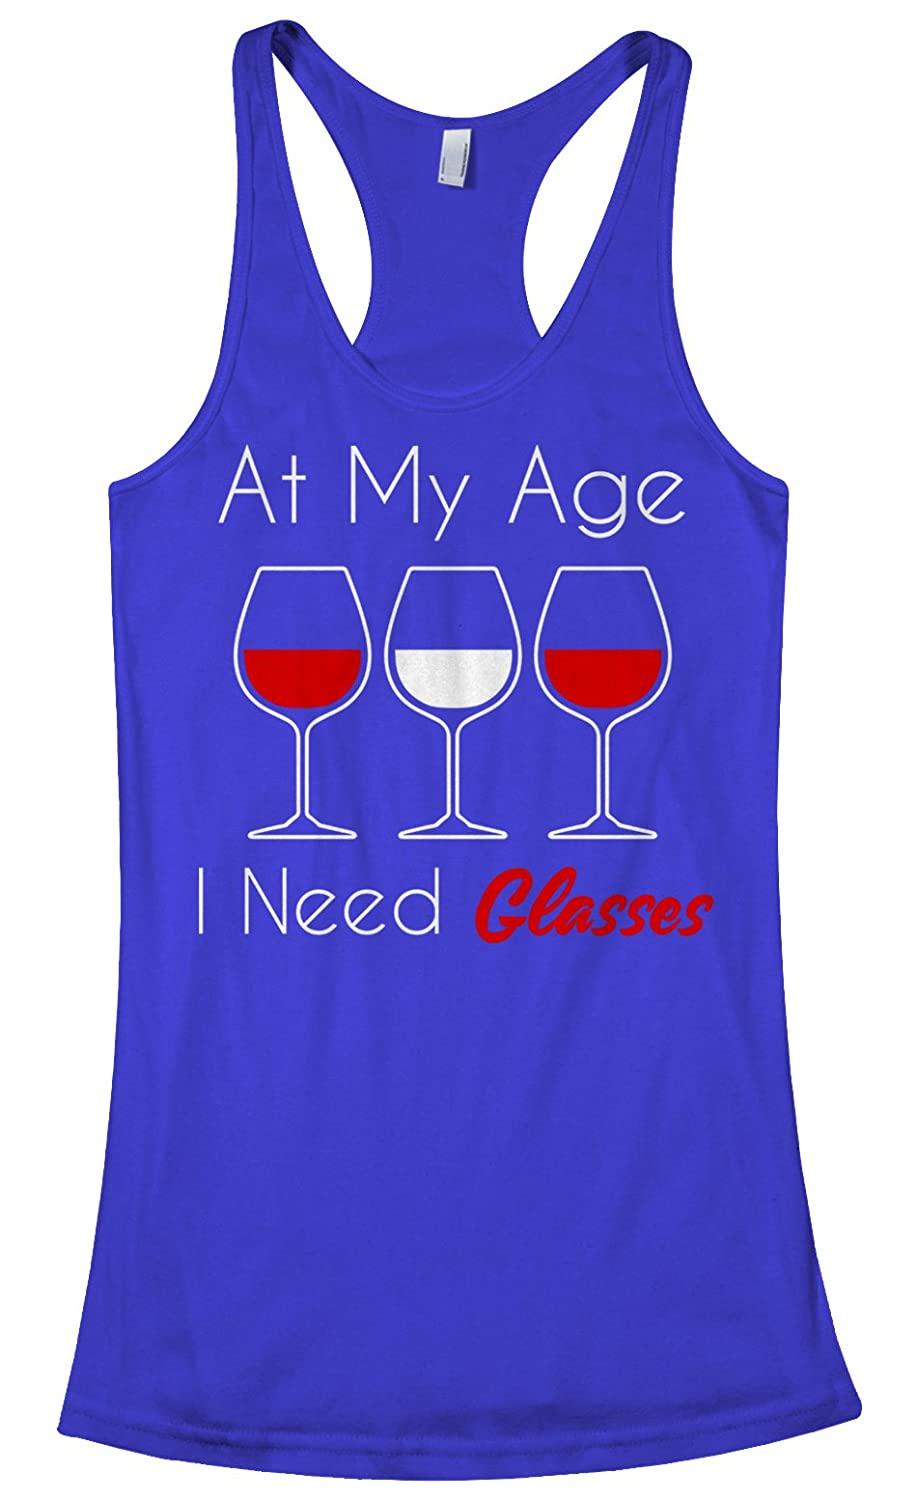 b0ff1e282931 Amazon.com  Threadrock Women s at My Age I Need Glasses Racerback Tank Top   Clothing